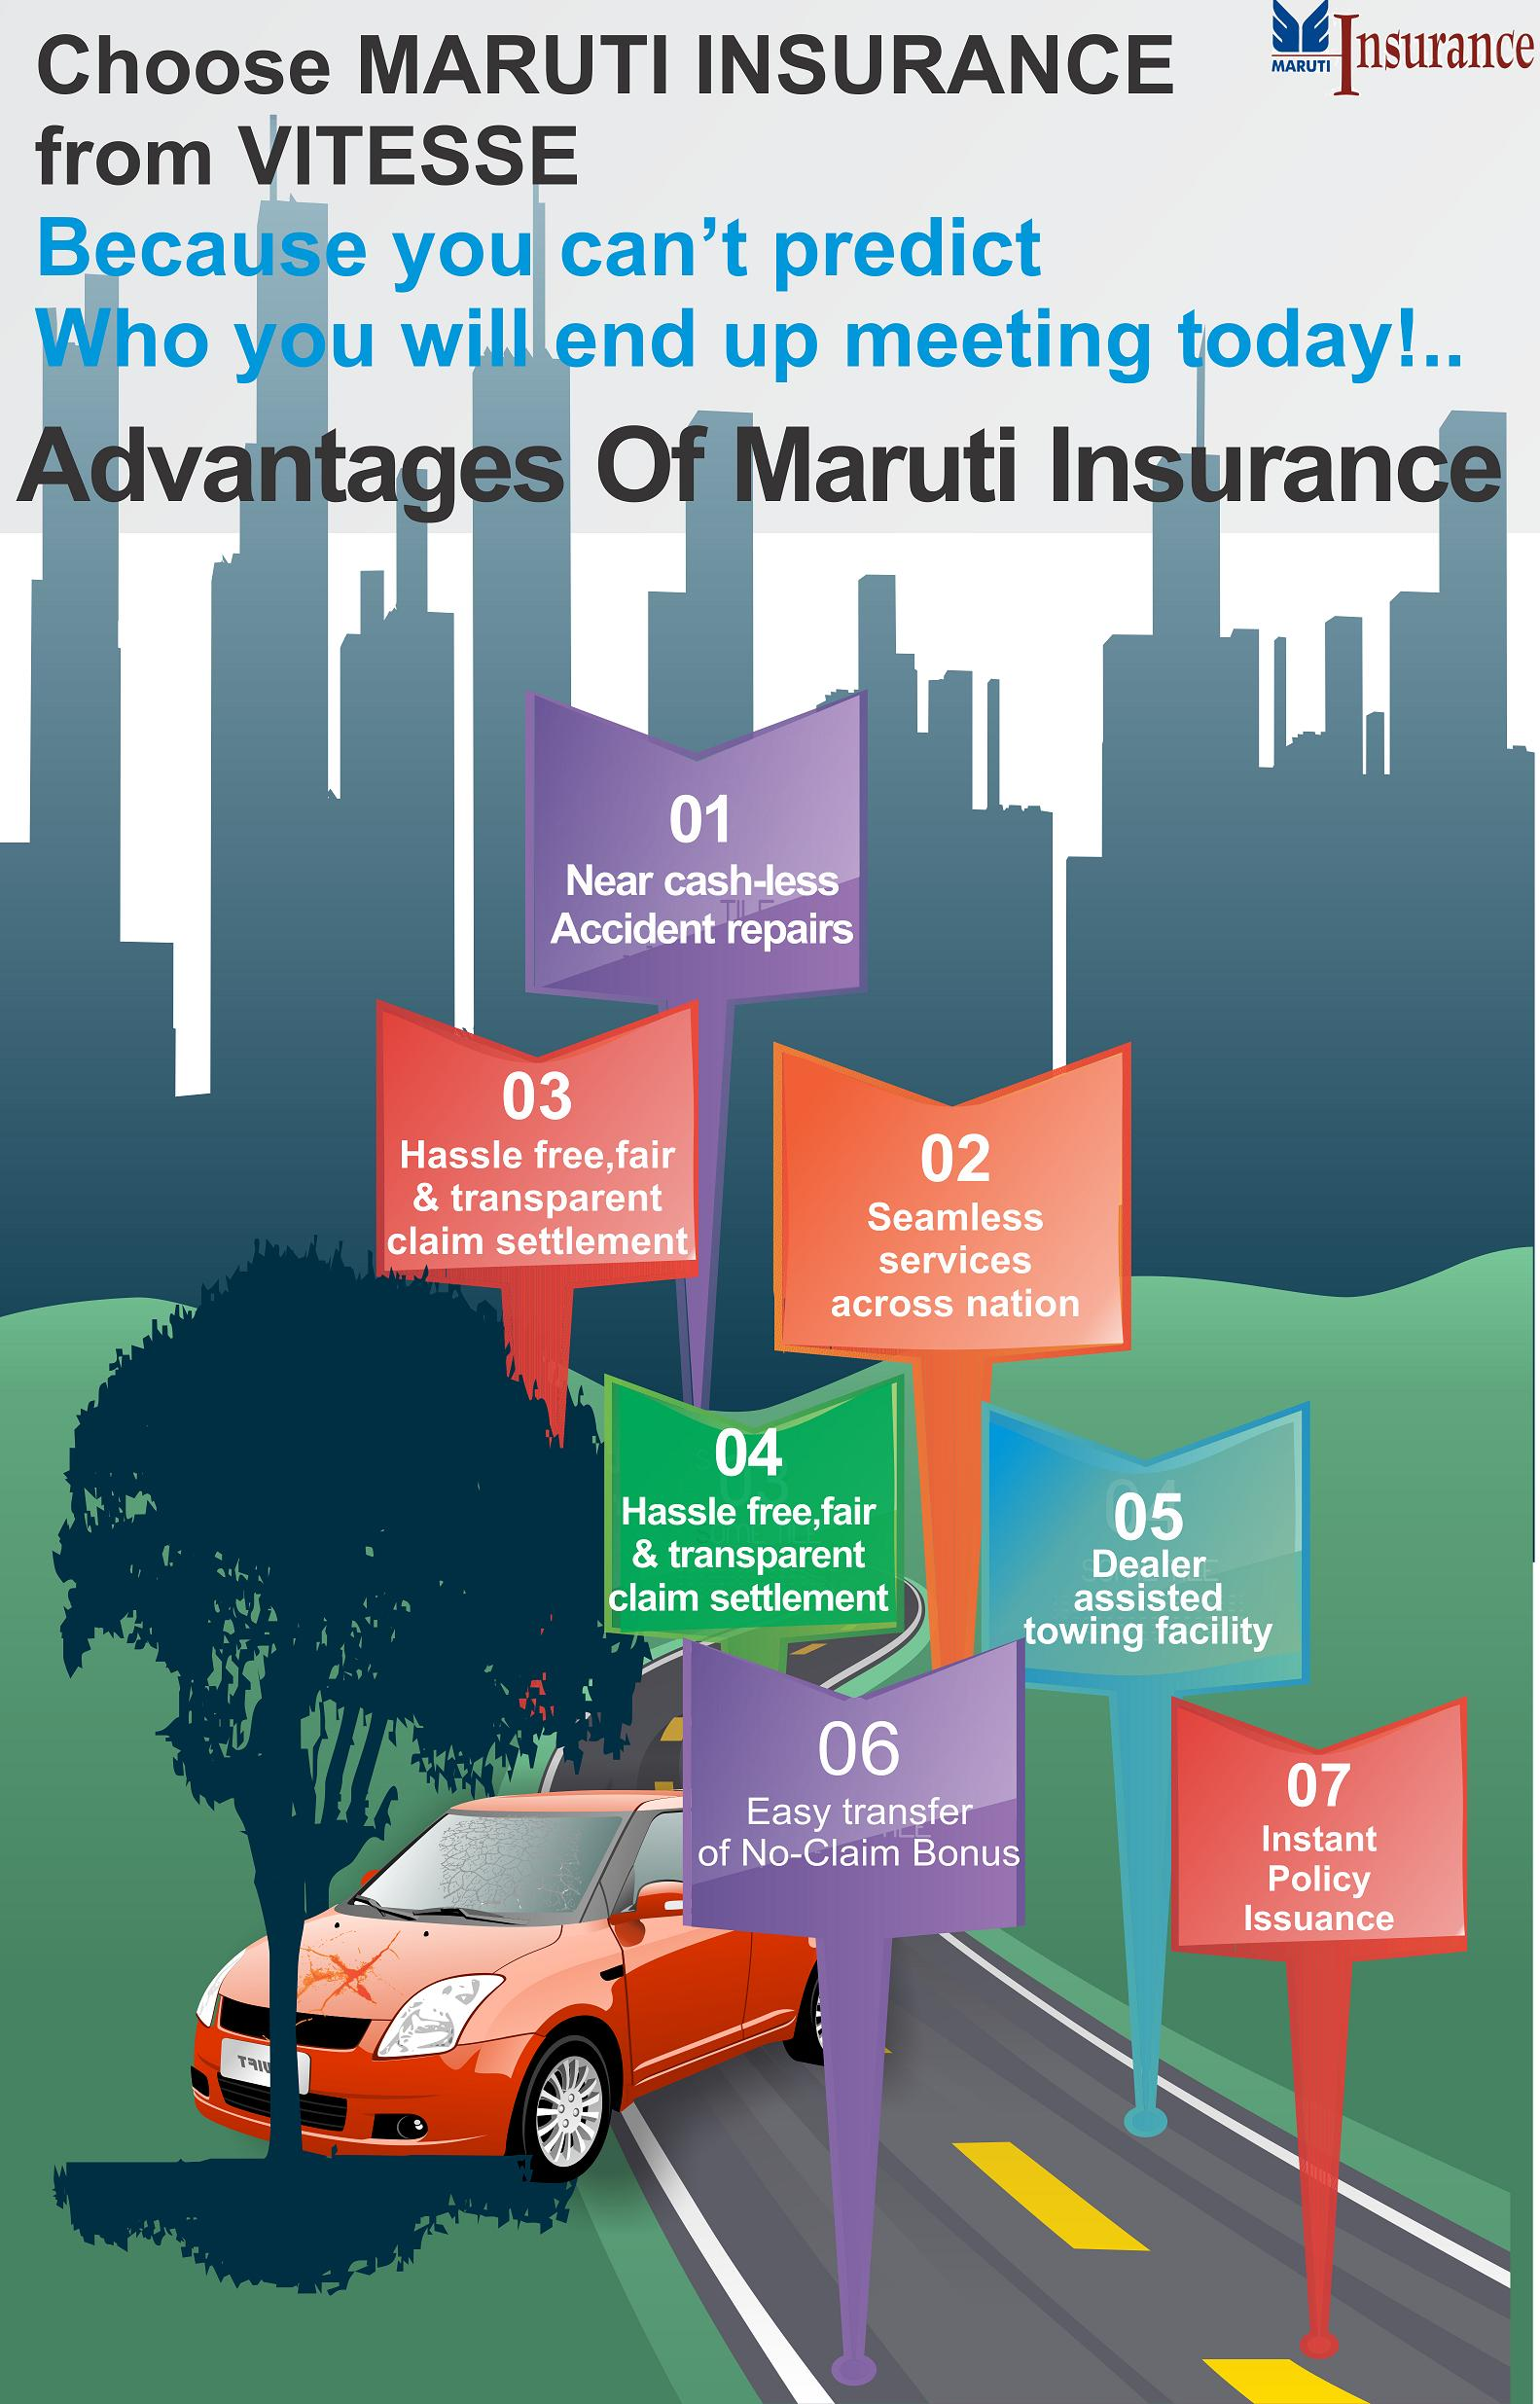 Choose MARUTI INSURA